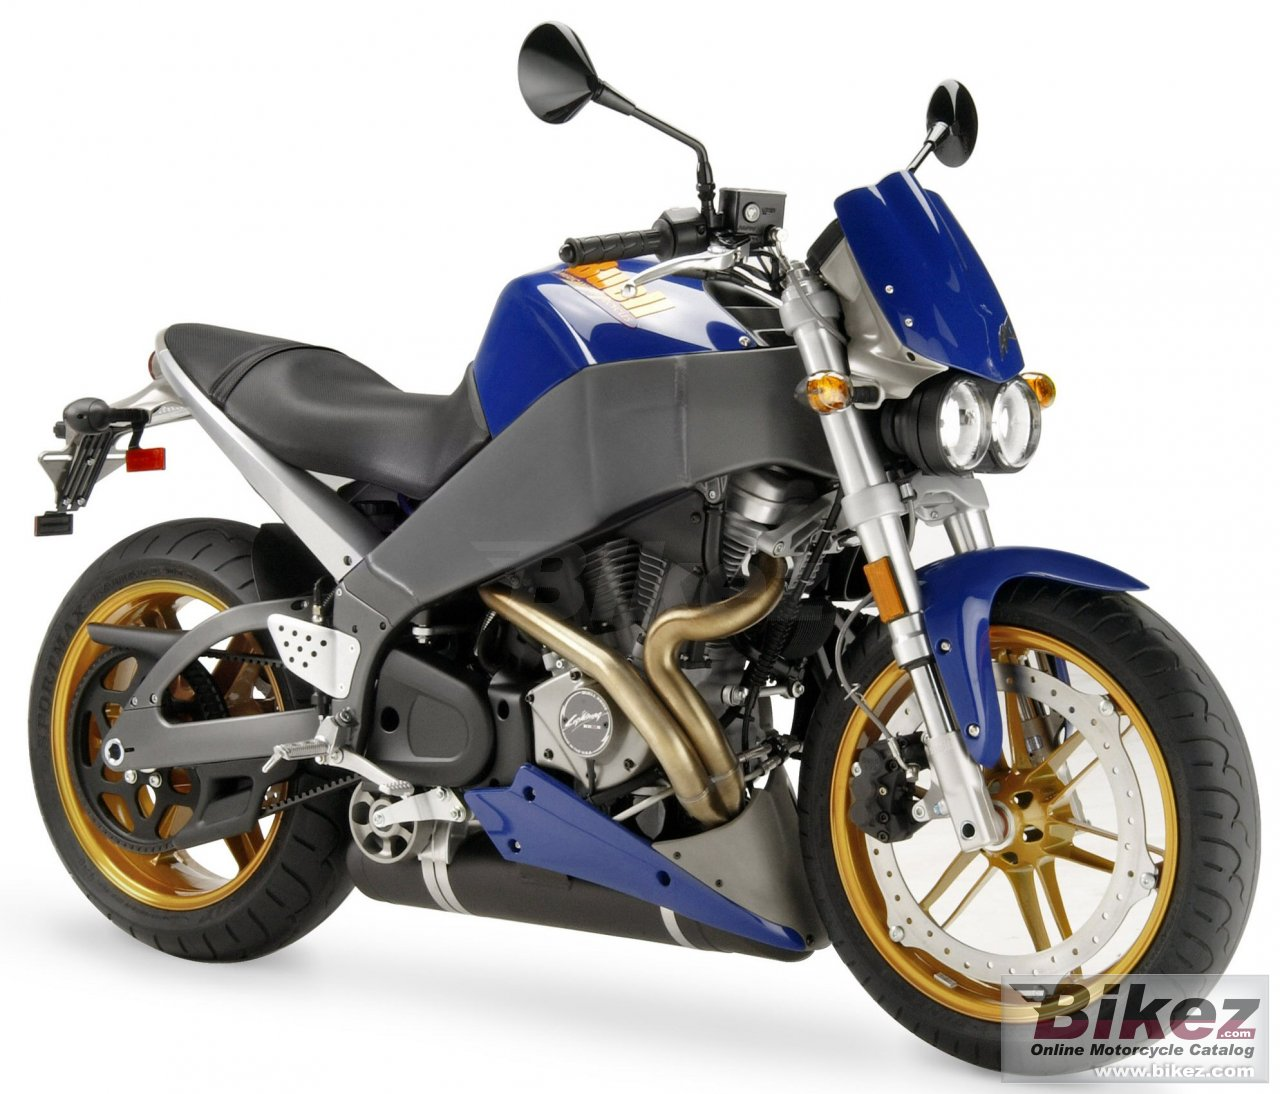 Big Buell lightning xb12s picture and wallpaper from Bikez.com